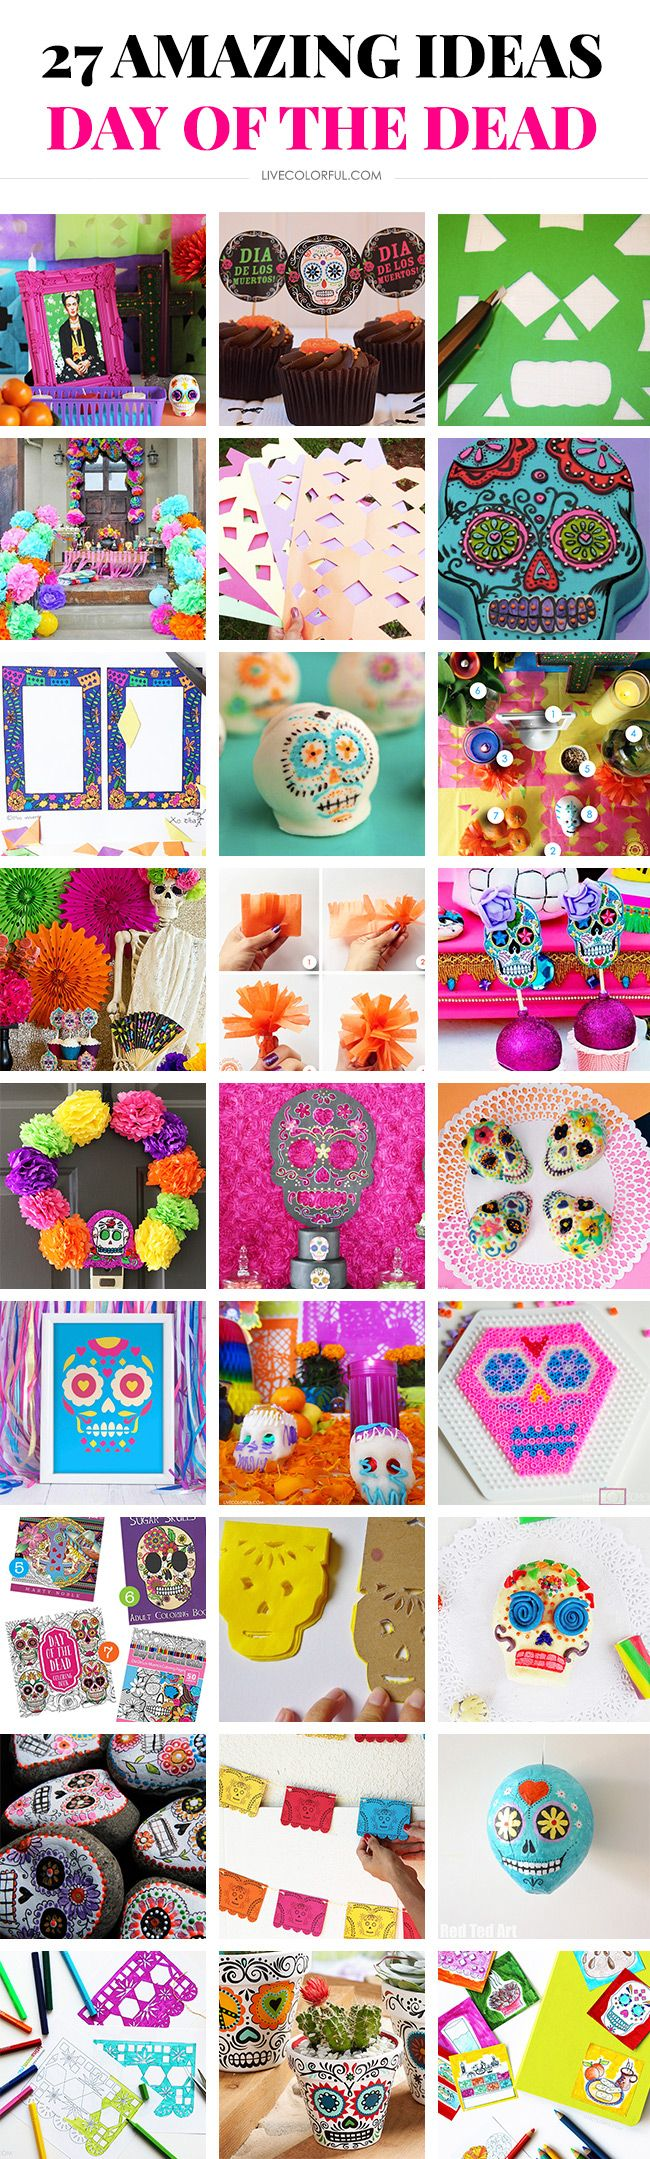 Check out these 27 Amazing Day of the Dead (Dia de Muertos) ideas! | Live Colorful